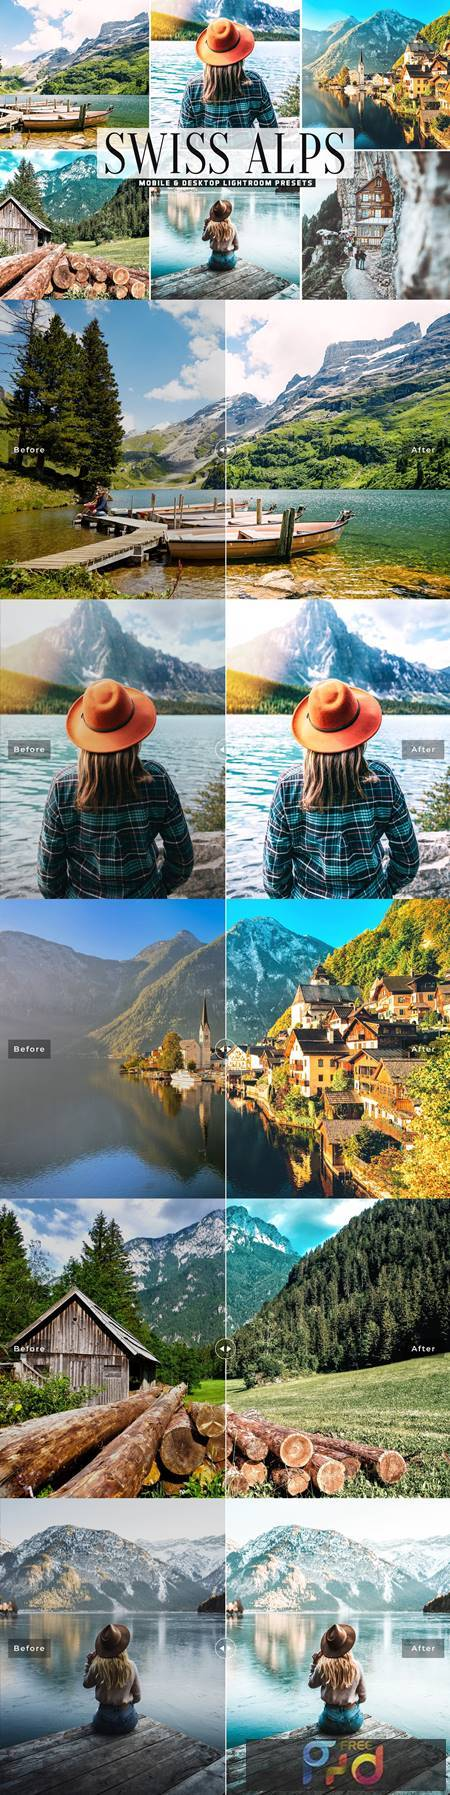 Swiss Alps Mobile & Desktop Lightroom Presets 5478257 1